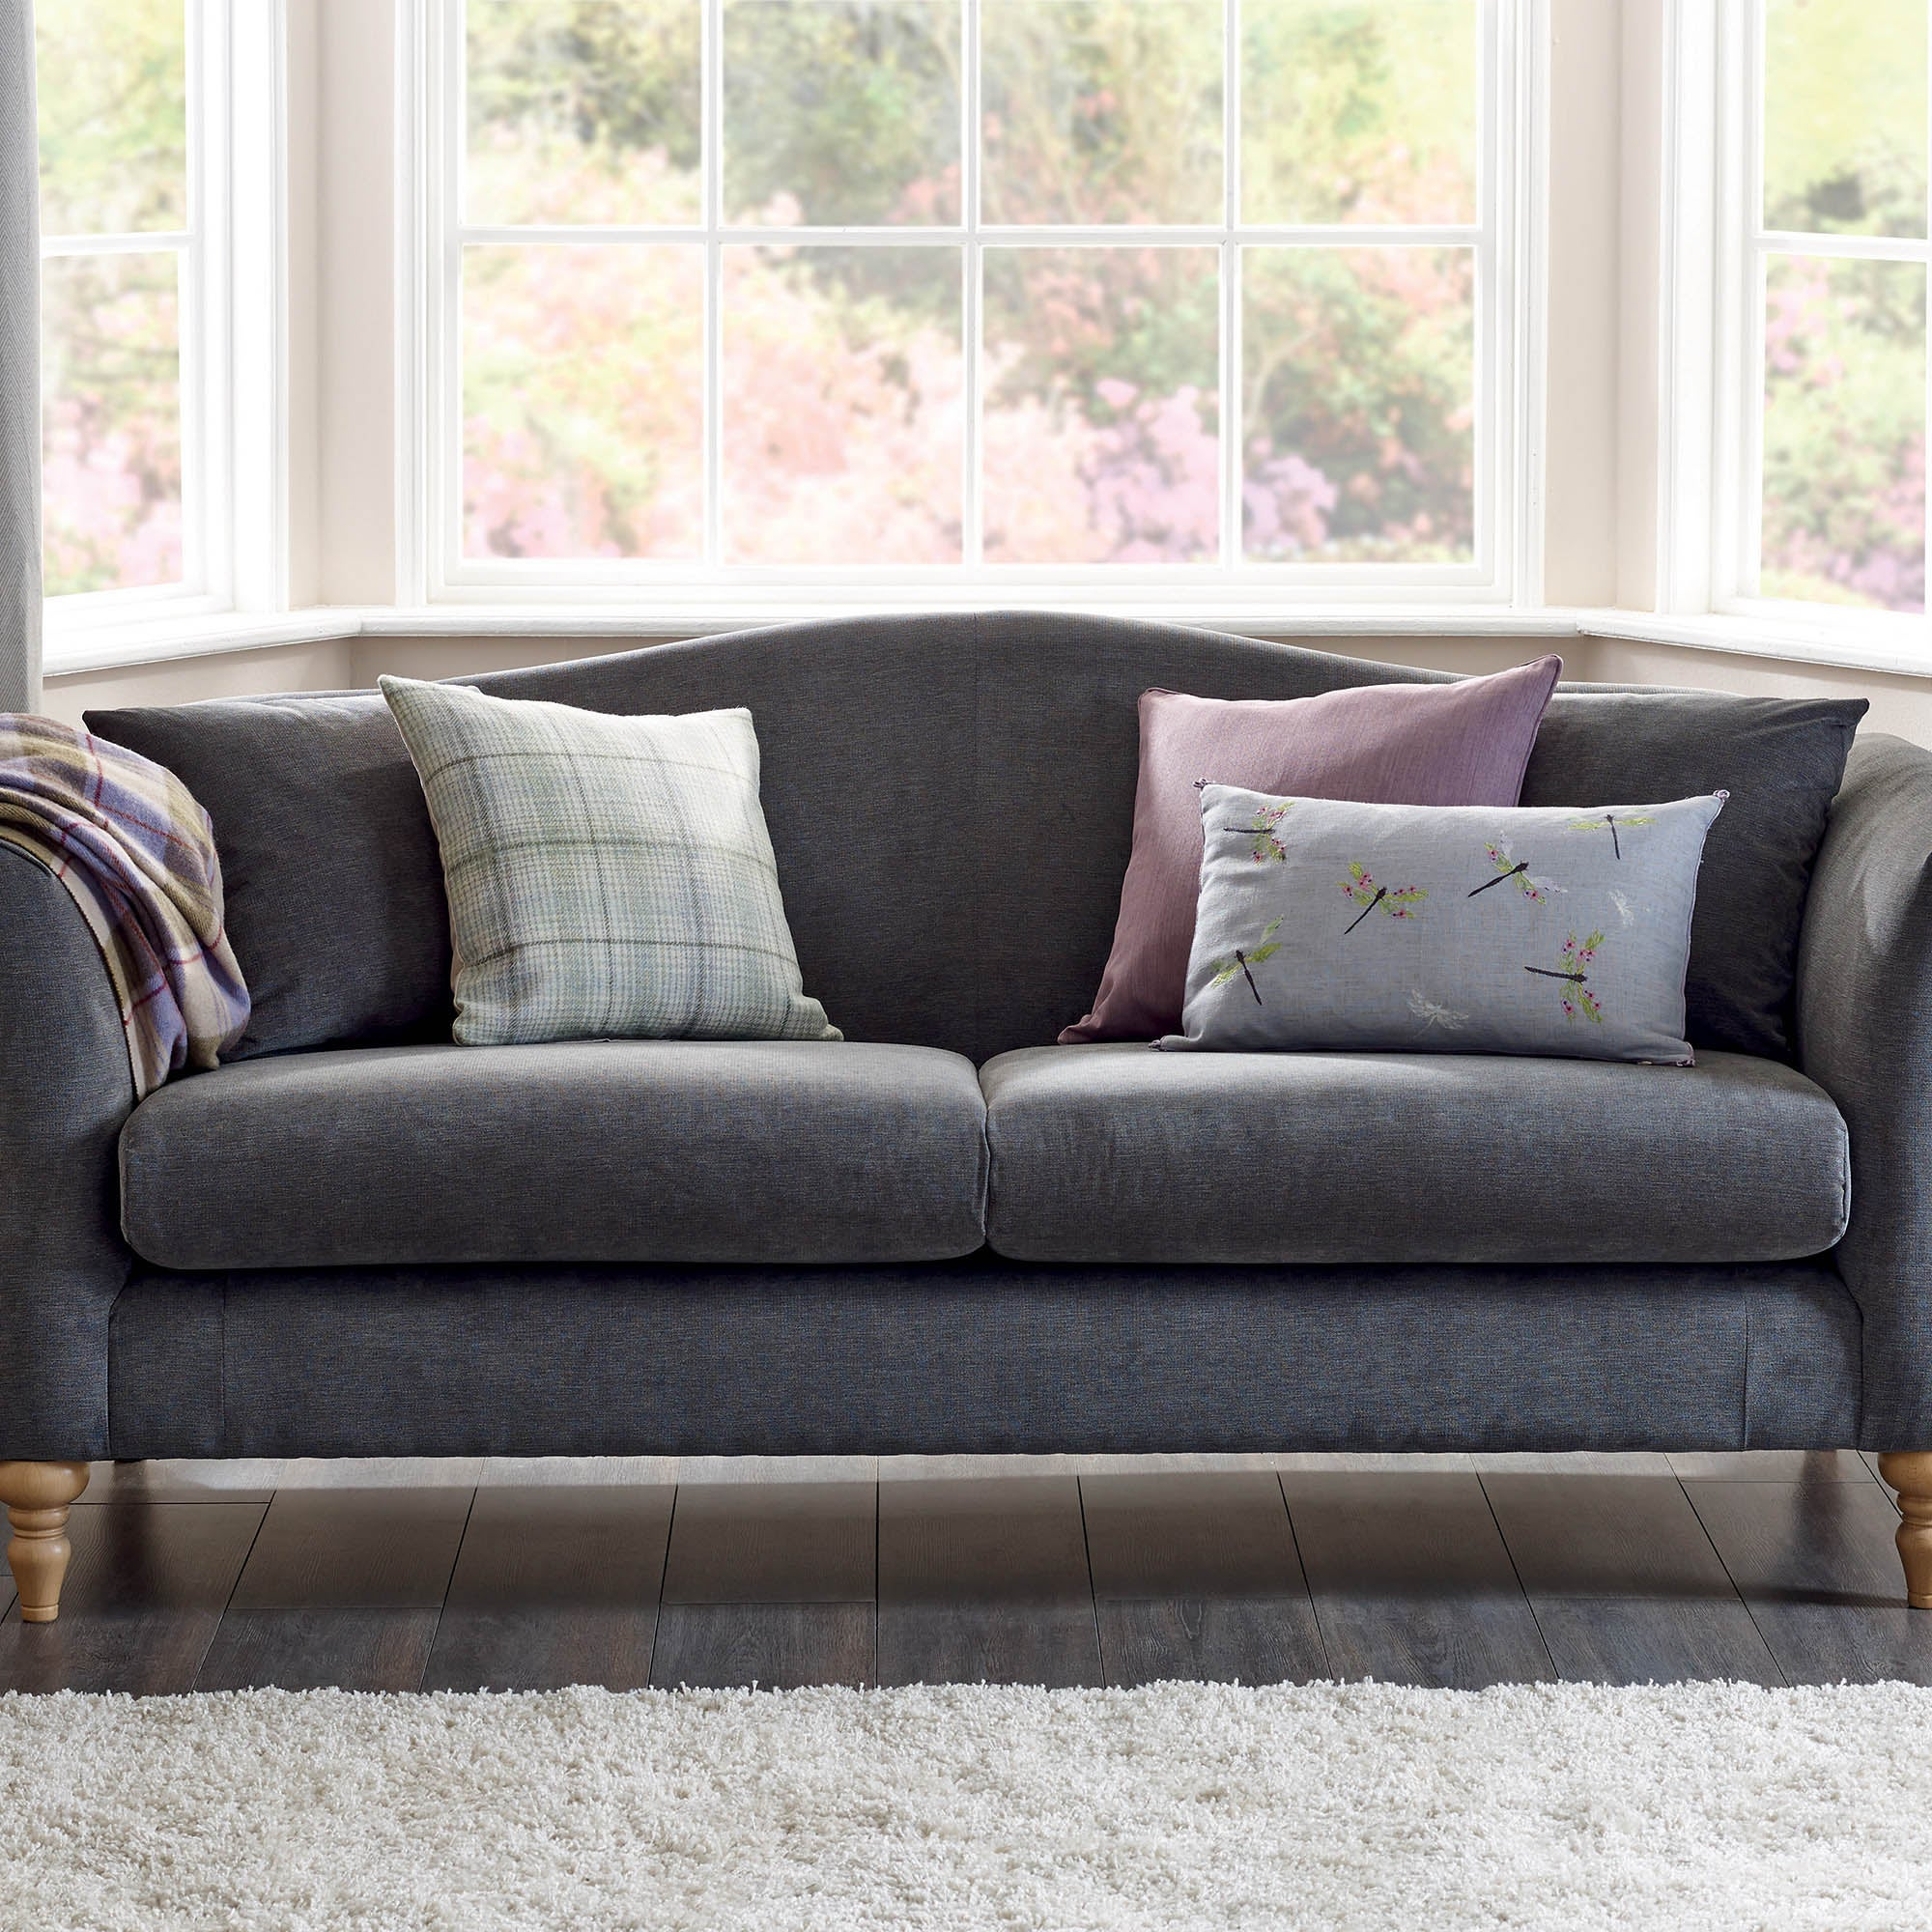 Chiltern Sofa Collection